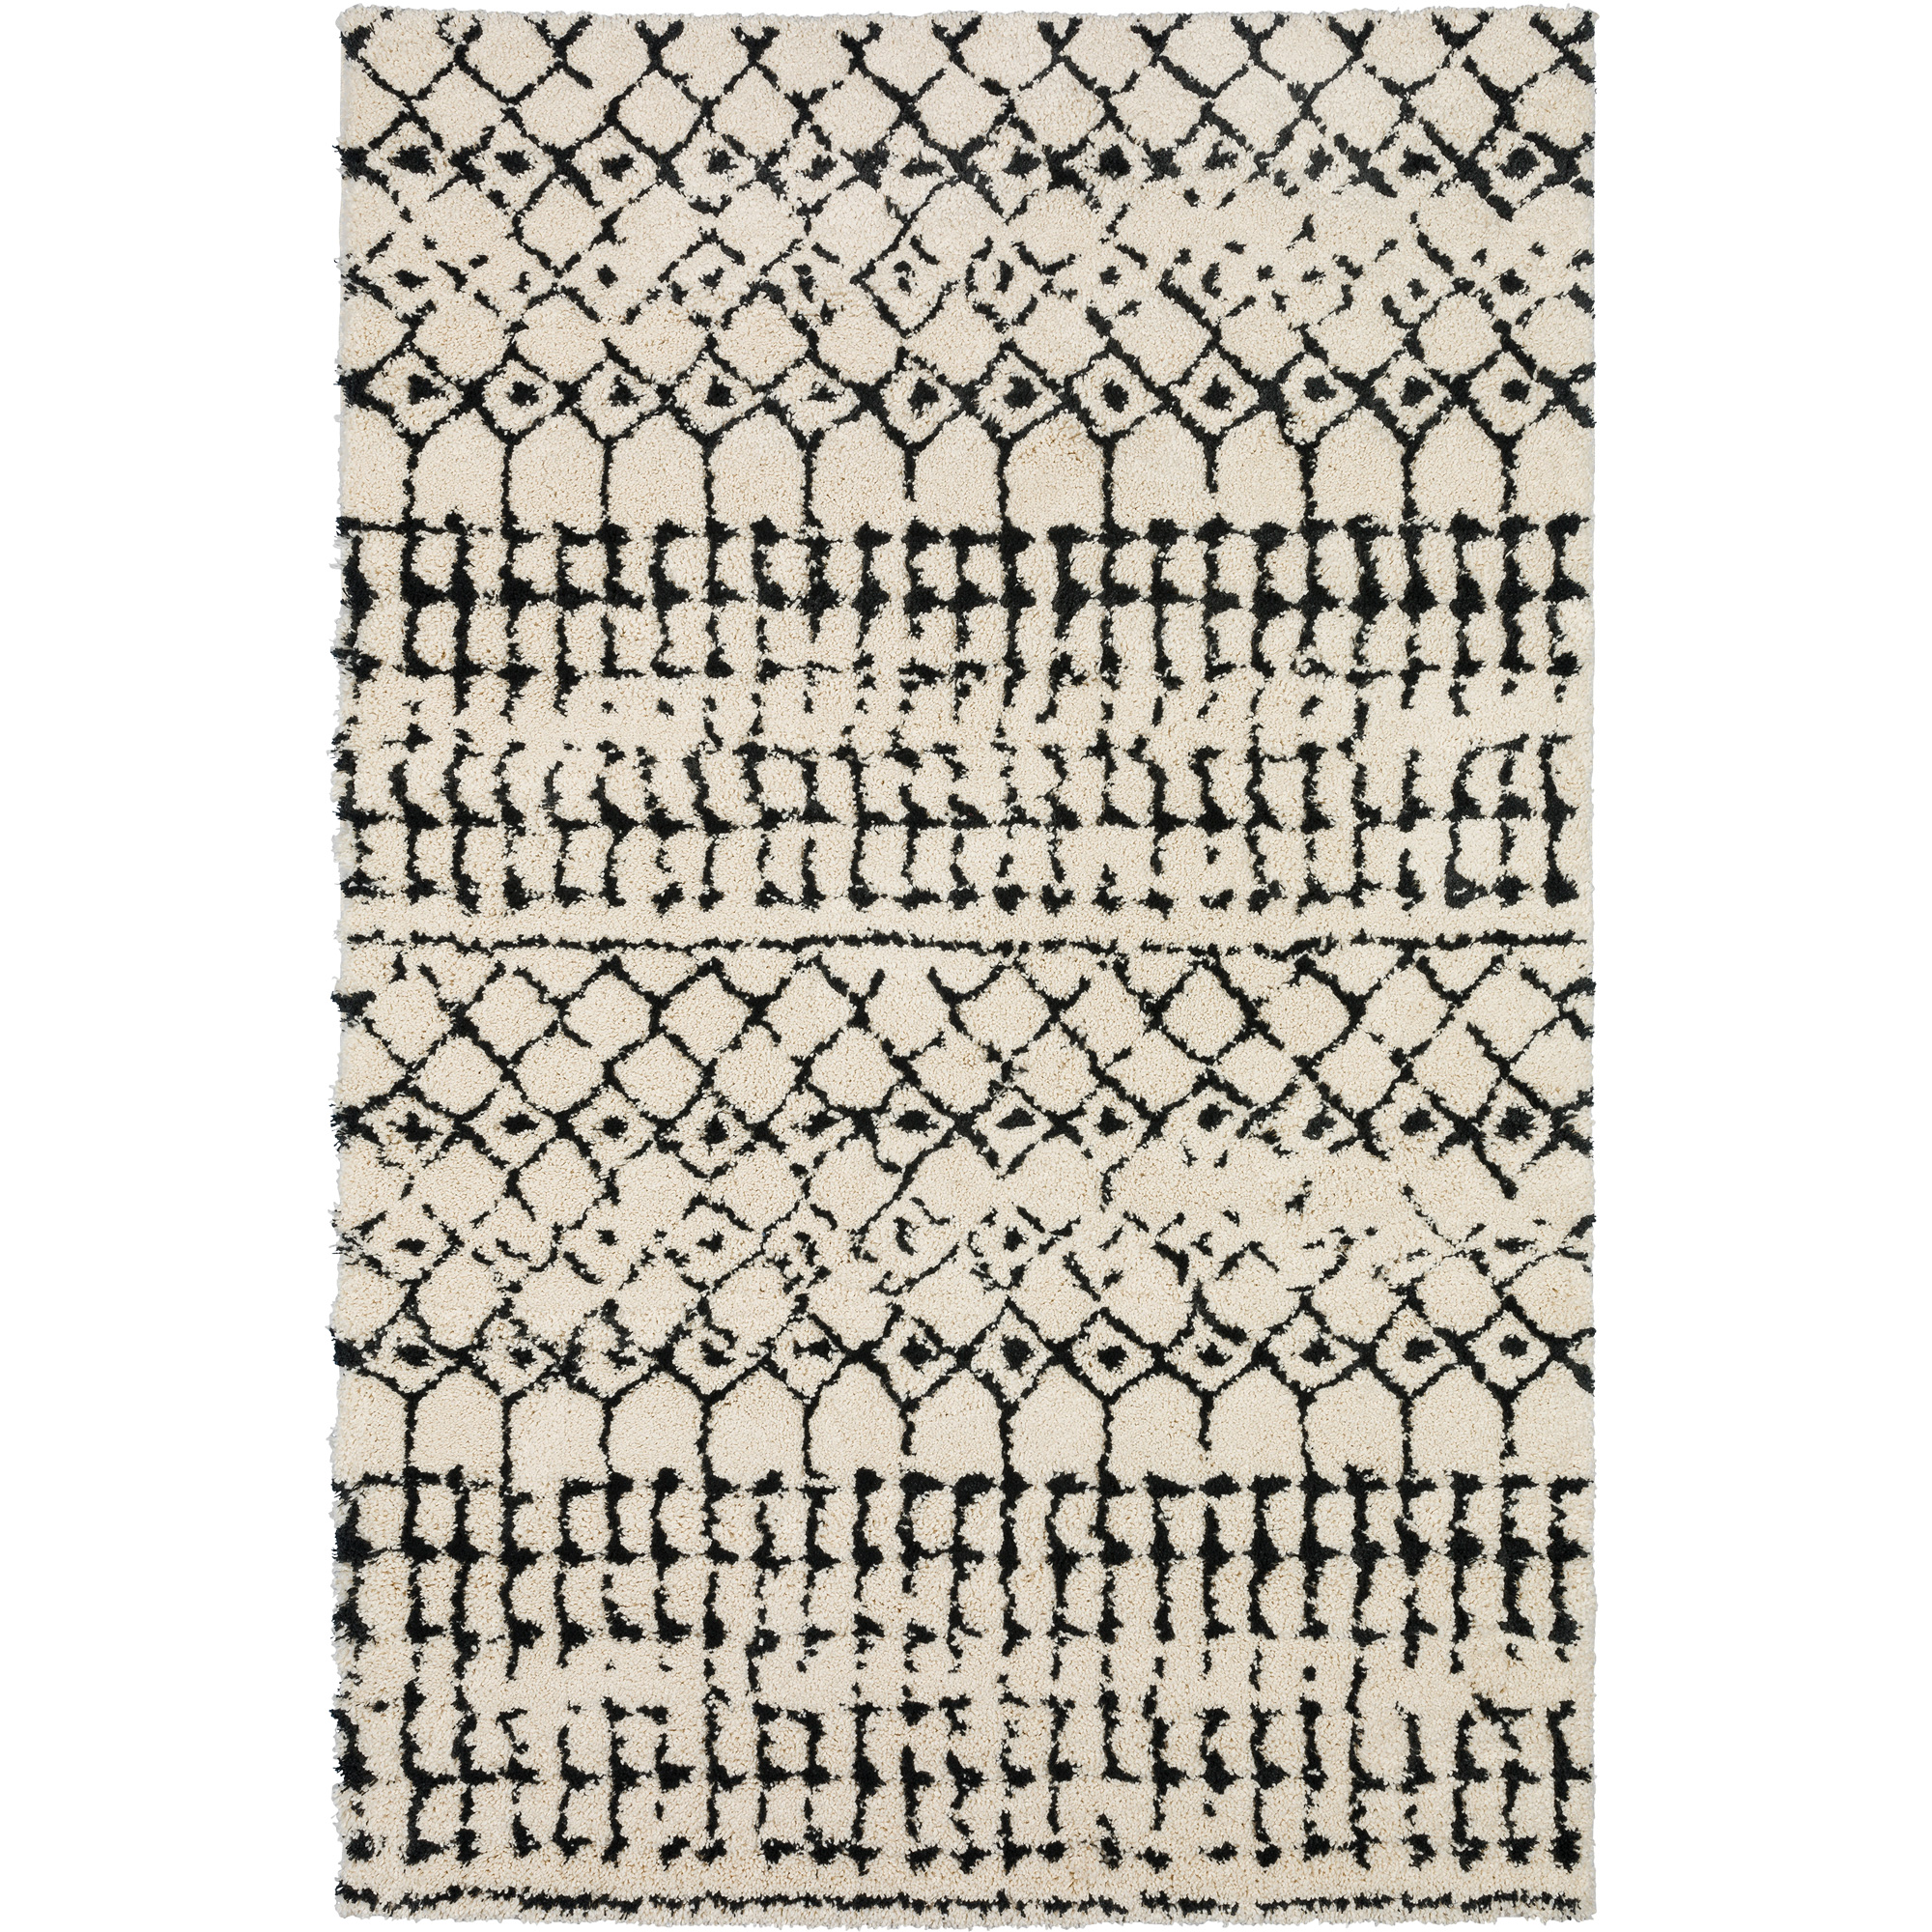 Dalyn Rug Company | Marquee Ivory And Midnight 5x8 Area Rug